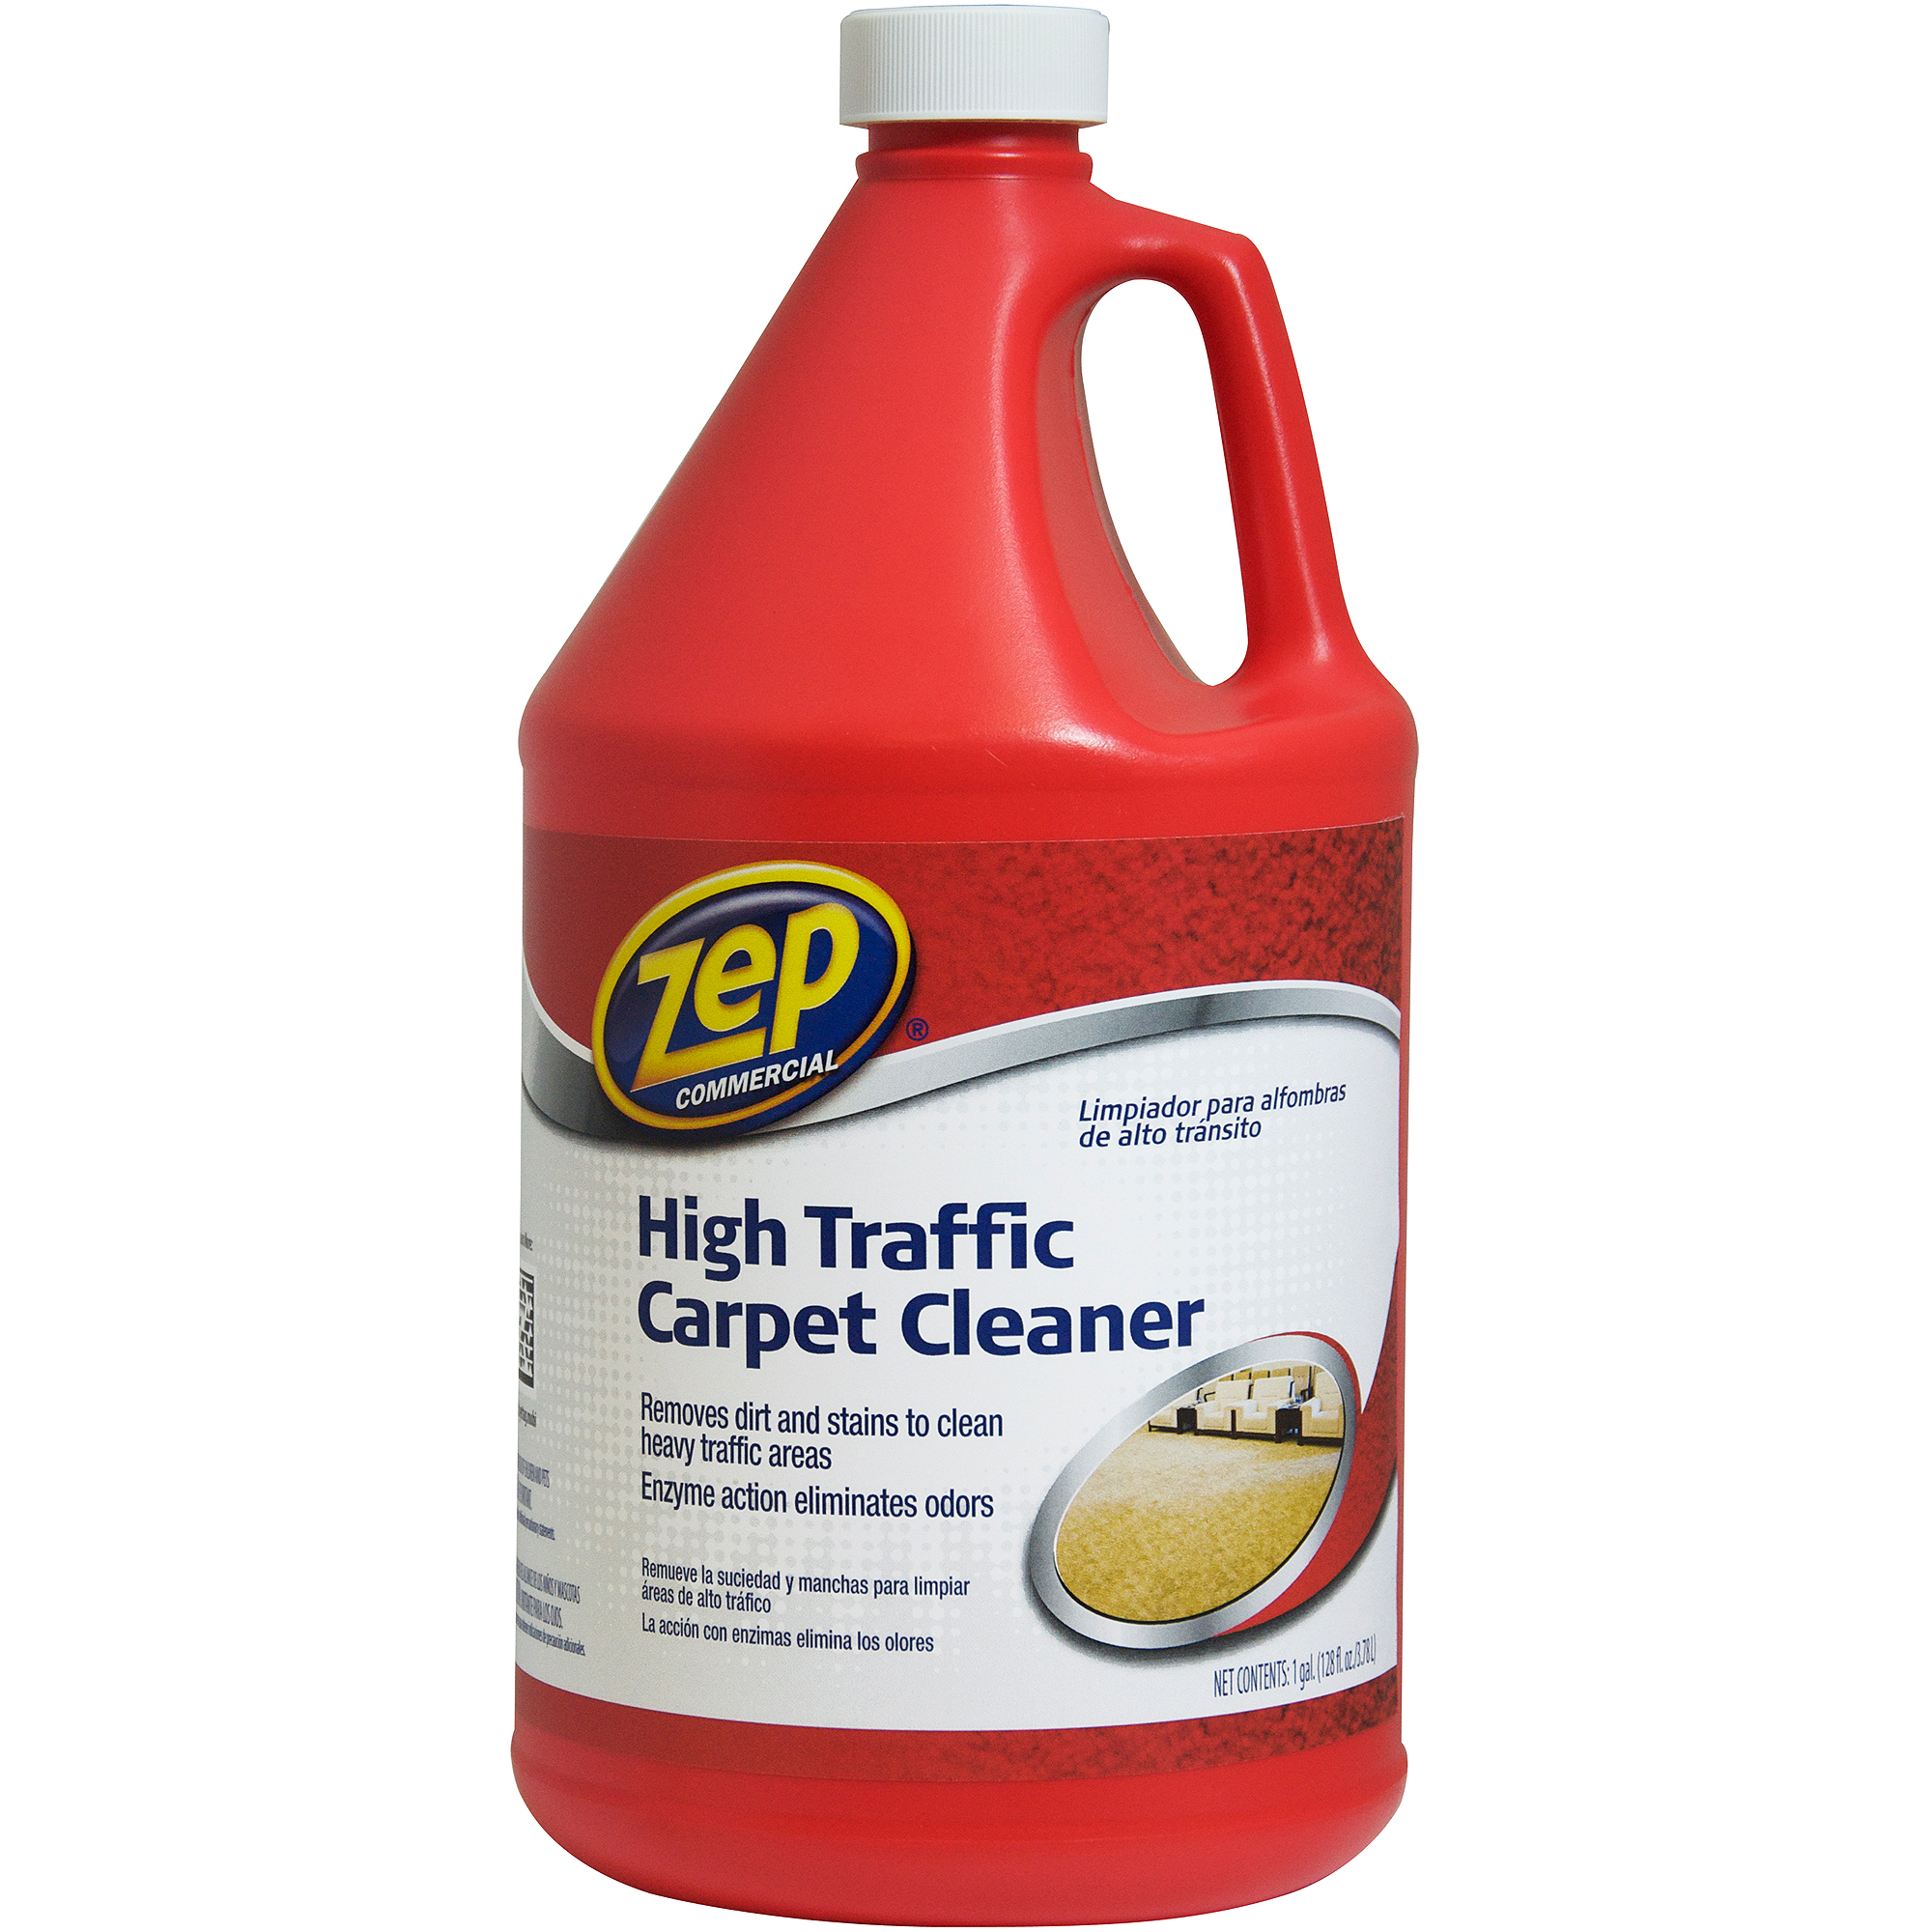 Perfect Zep Commercial High Traffic Carpet Cleaner, 1 Gal   Walmart.com